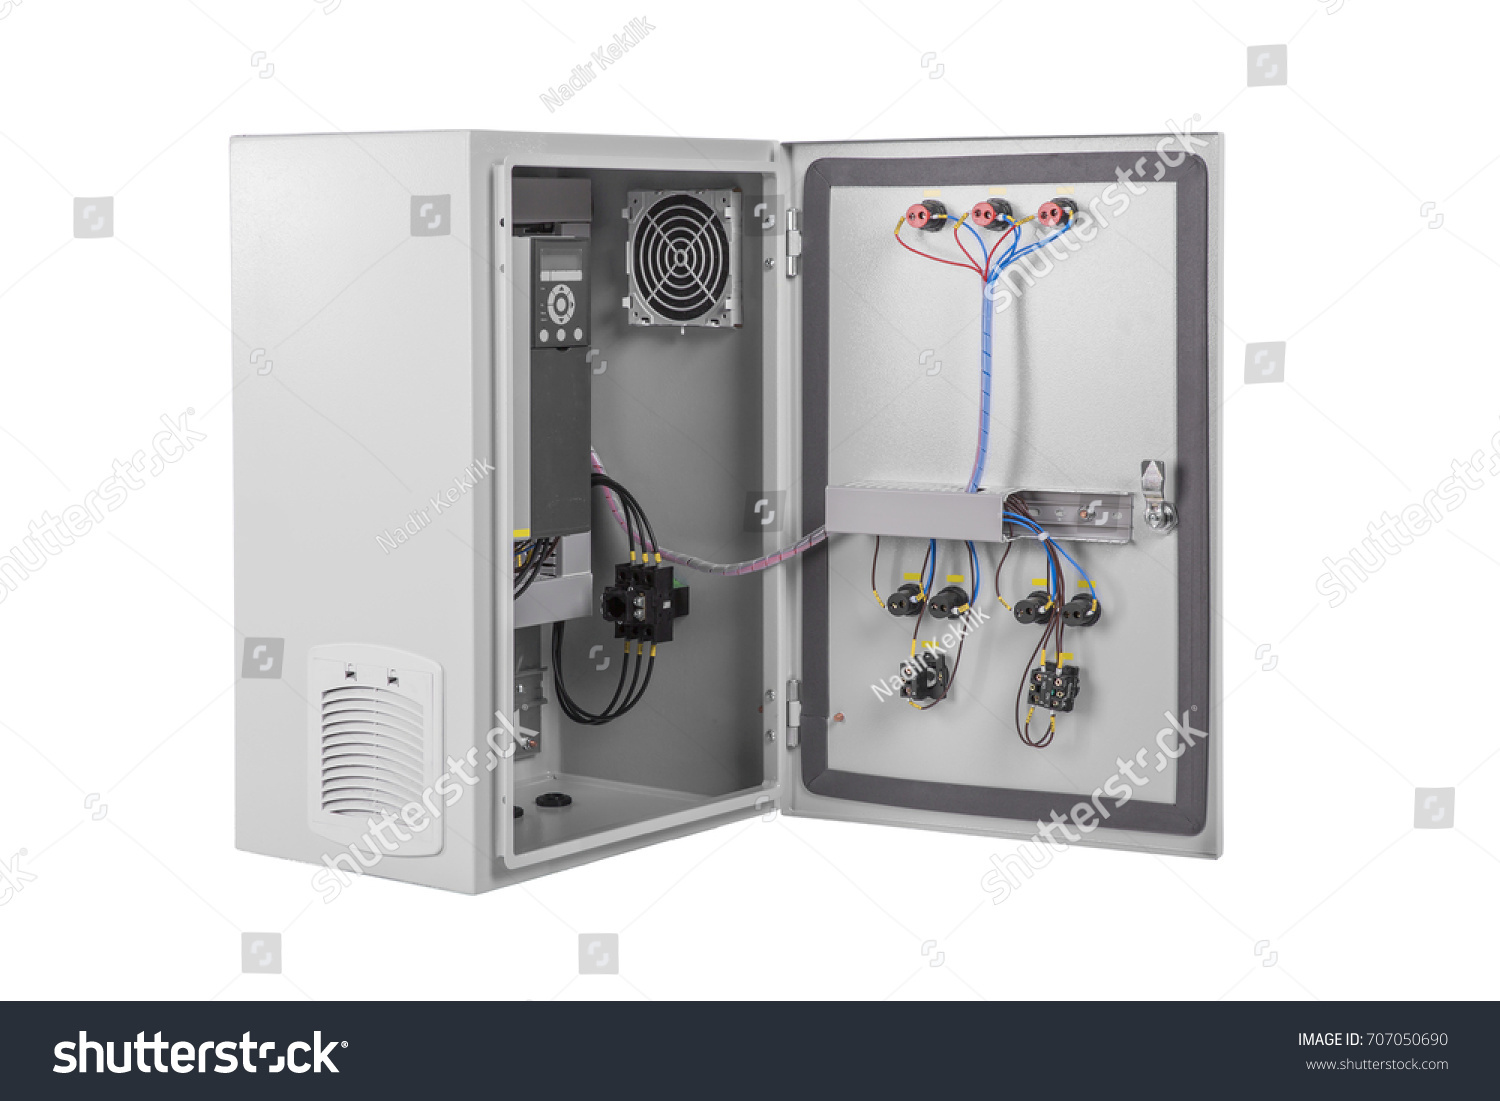 Brand New Electrical Box Contains Many Stock Photo Edit Now Relay Terminal Wiring The Terminals Relays Wires And Switches Isolated On